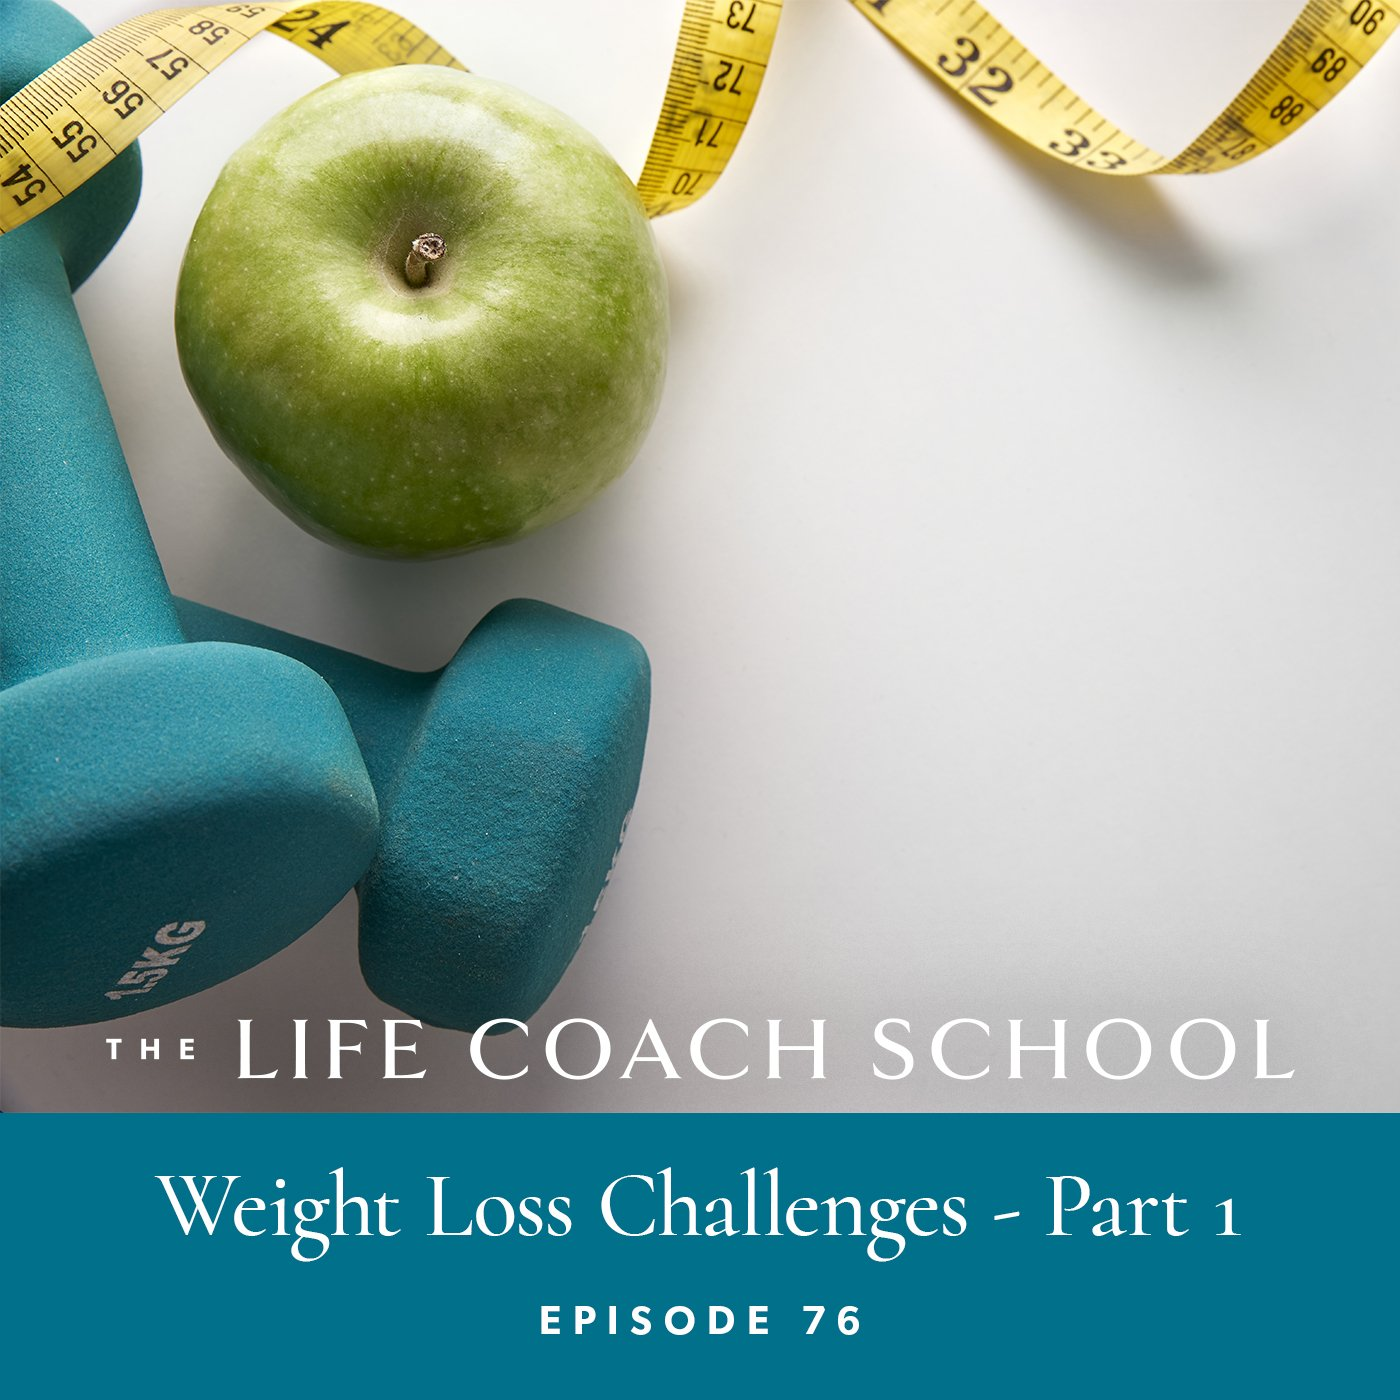 The Life Coach School Podcast with Brooke Castillo | Episode 76 | Weight Loss Challenges - Part 1